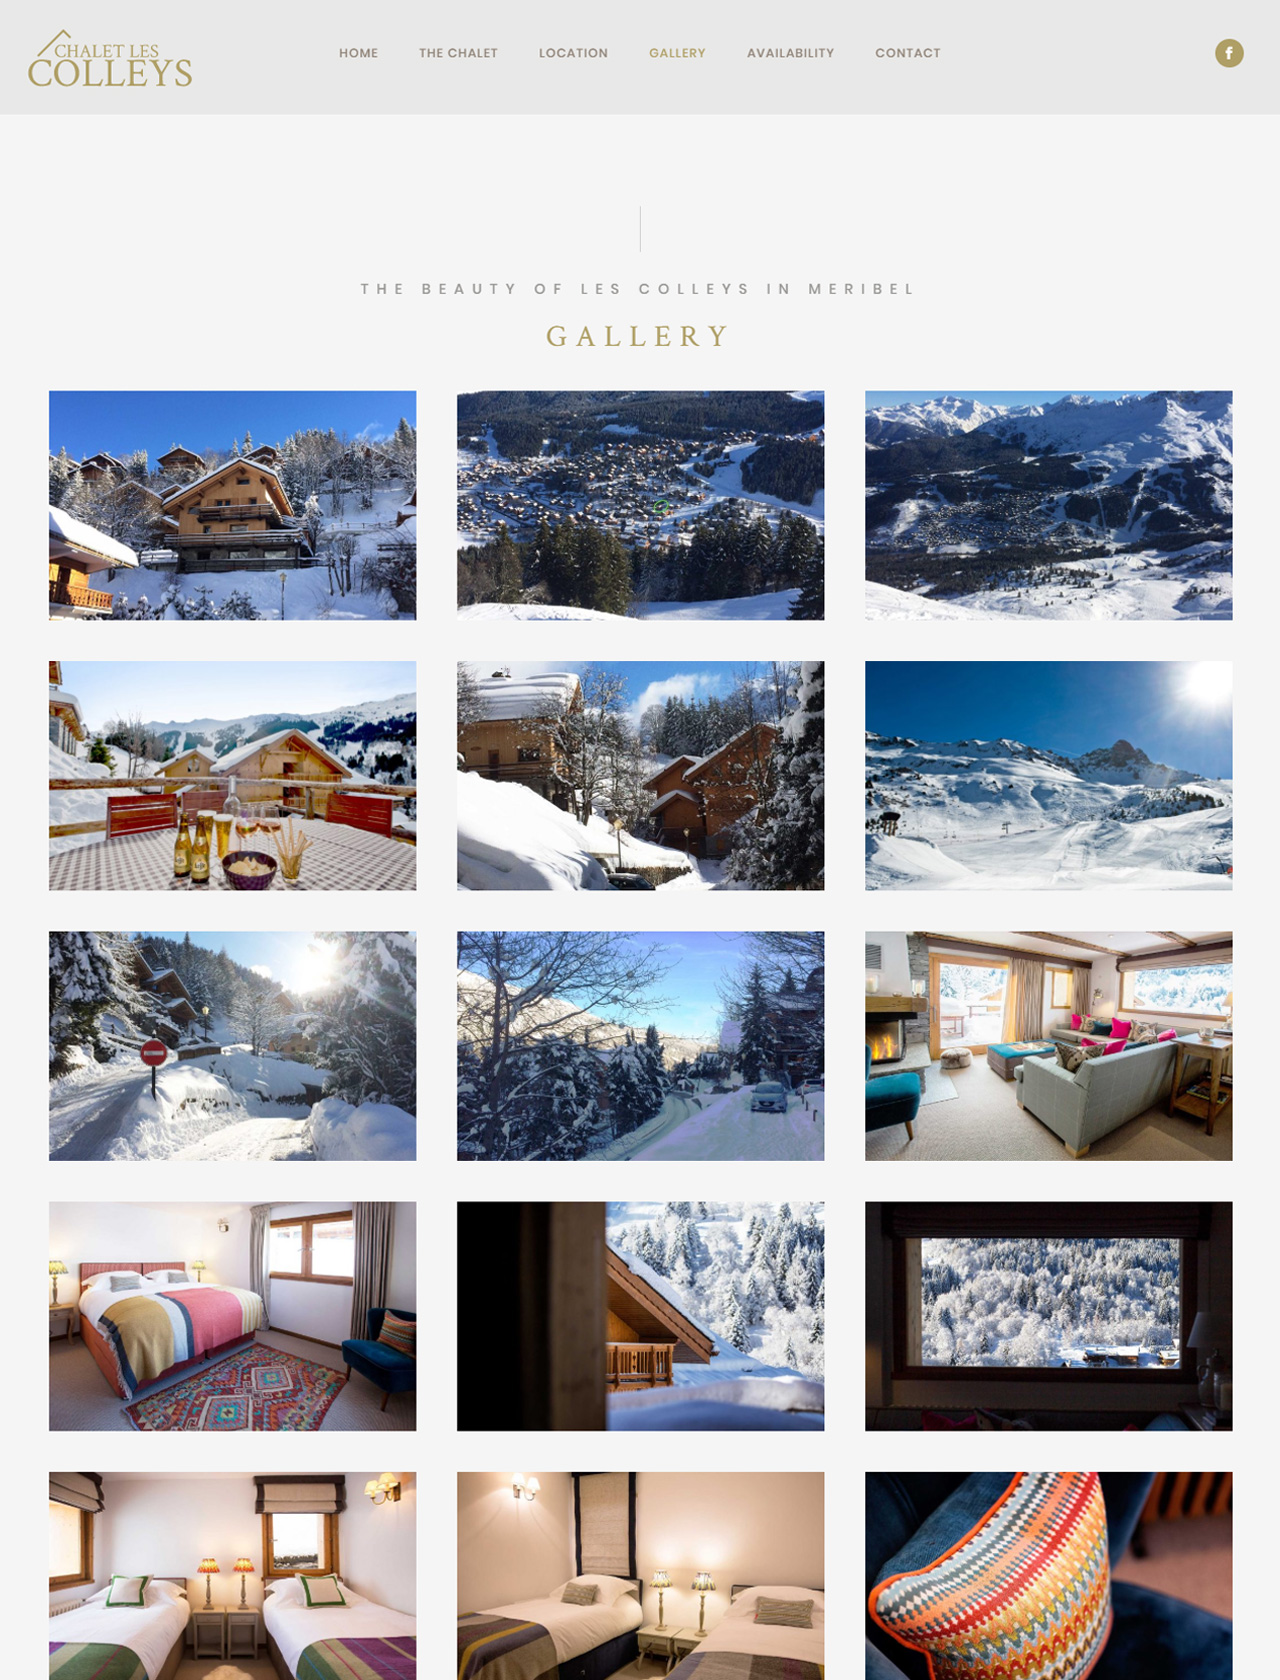 chalet in meribel website gallery page